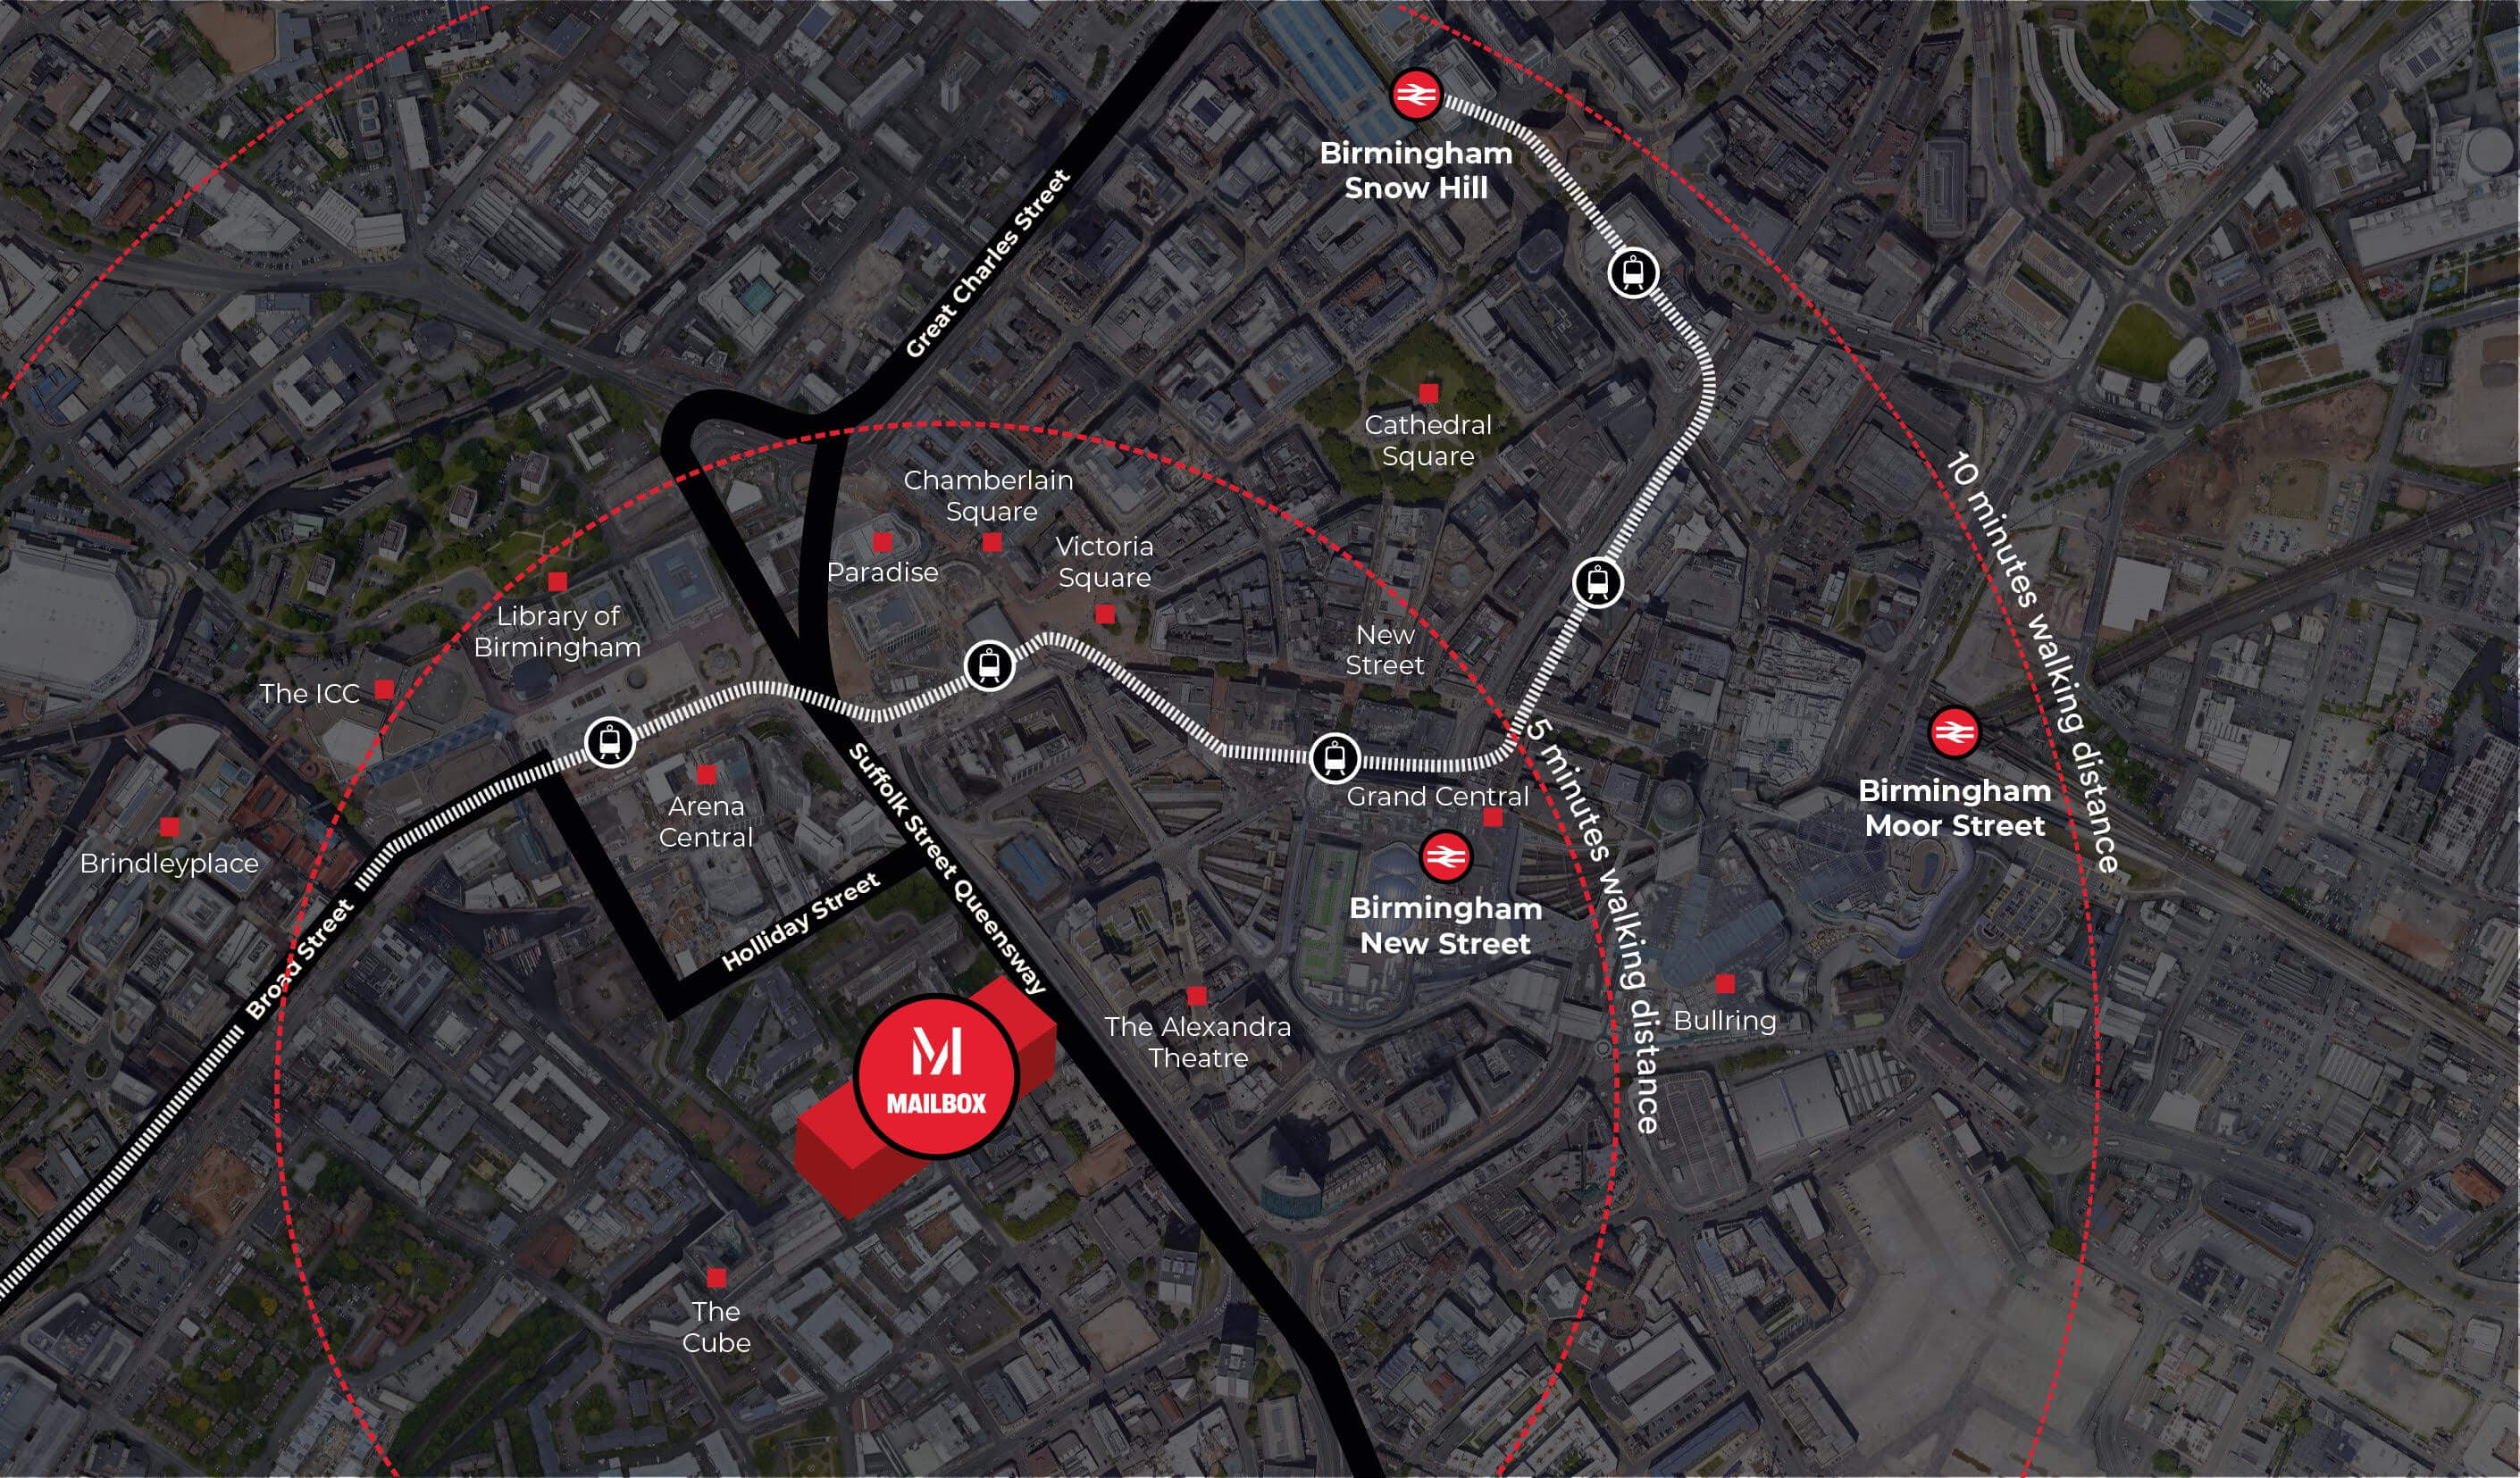 A map of Birmingham showing what is in 5 minute and 10 minute walking distances.